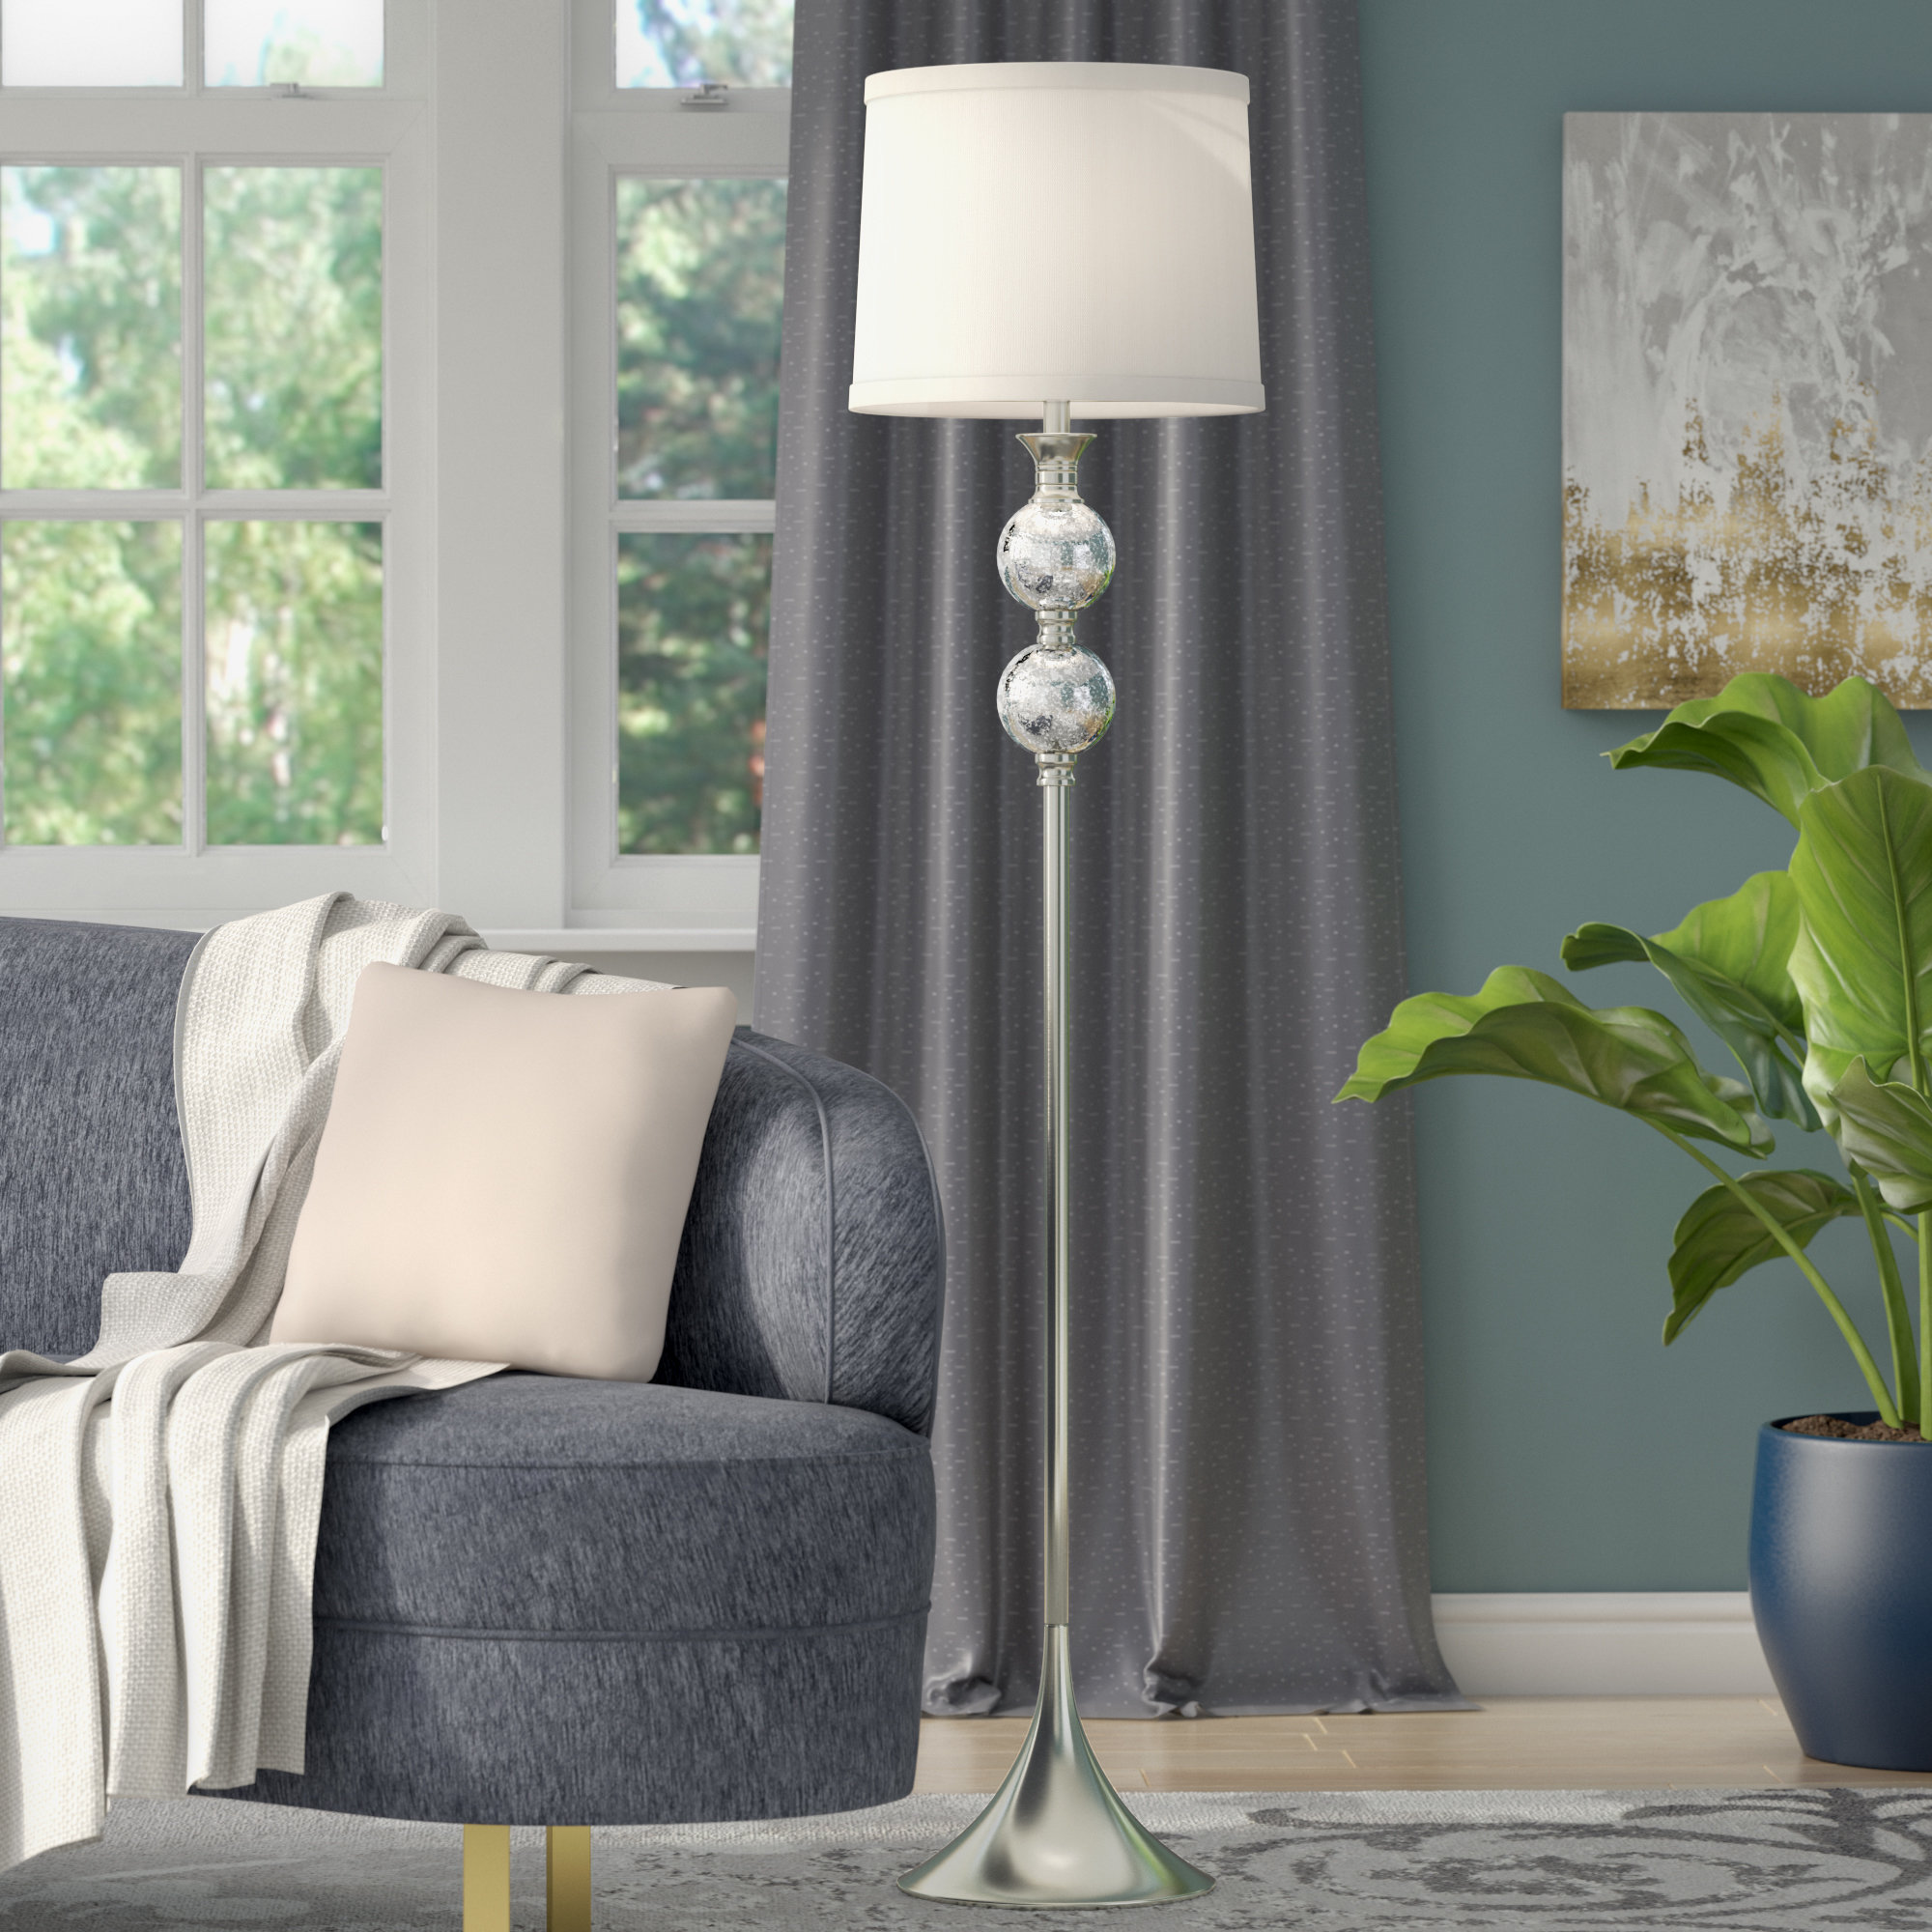 crystal chandelier floor lamp mcmillan and metal accent table spindle legs green bedside round garden coffee corner occasional drop leaf lighting portland cocktail linens jcpenney